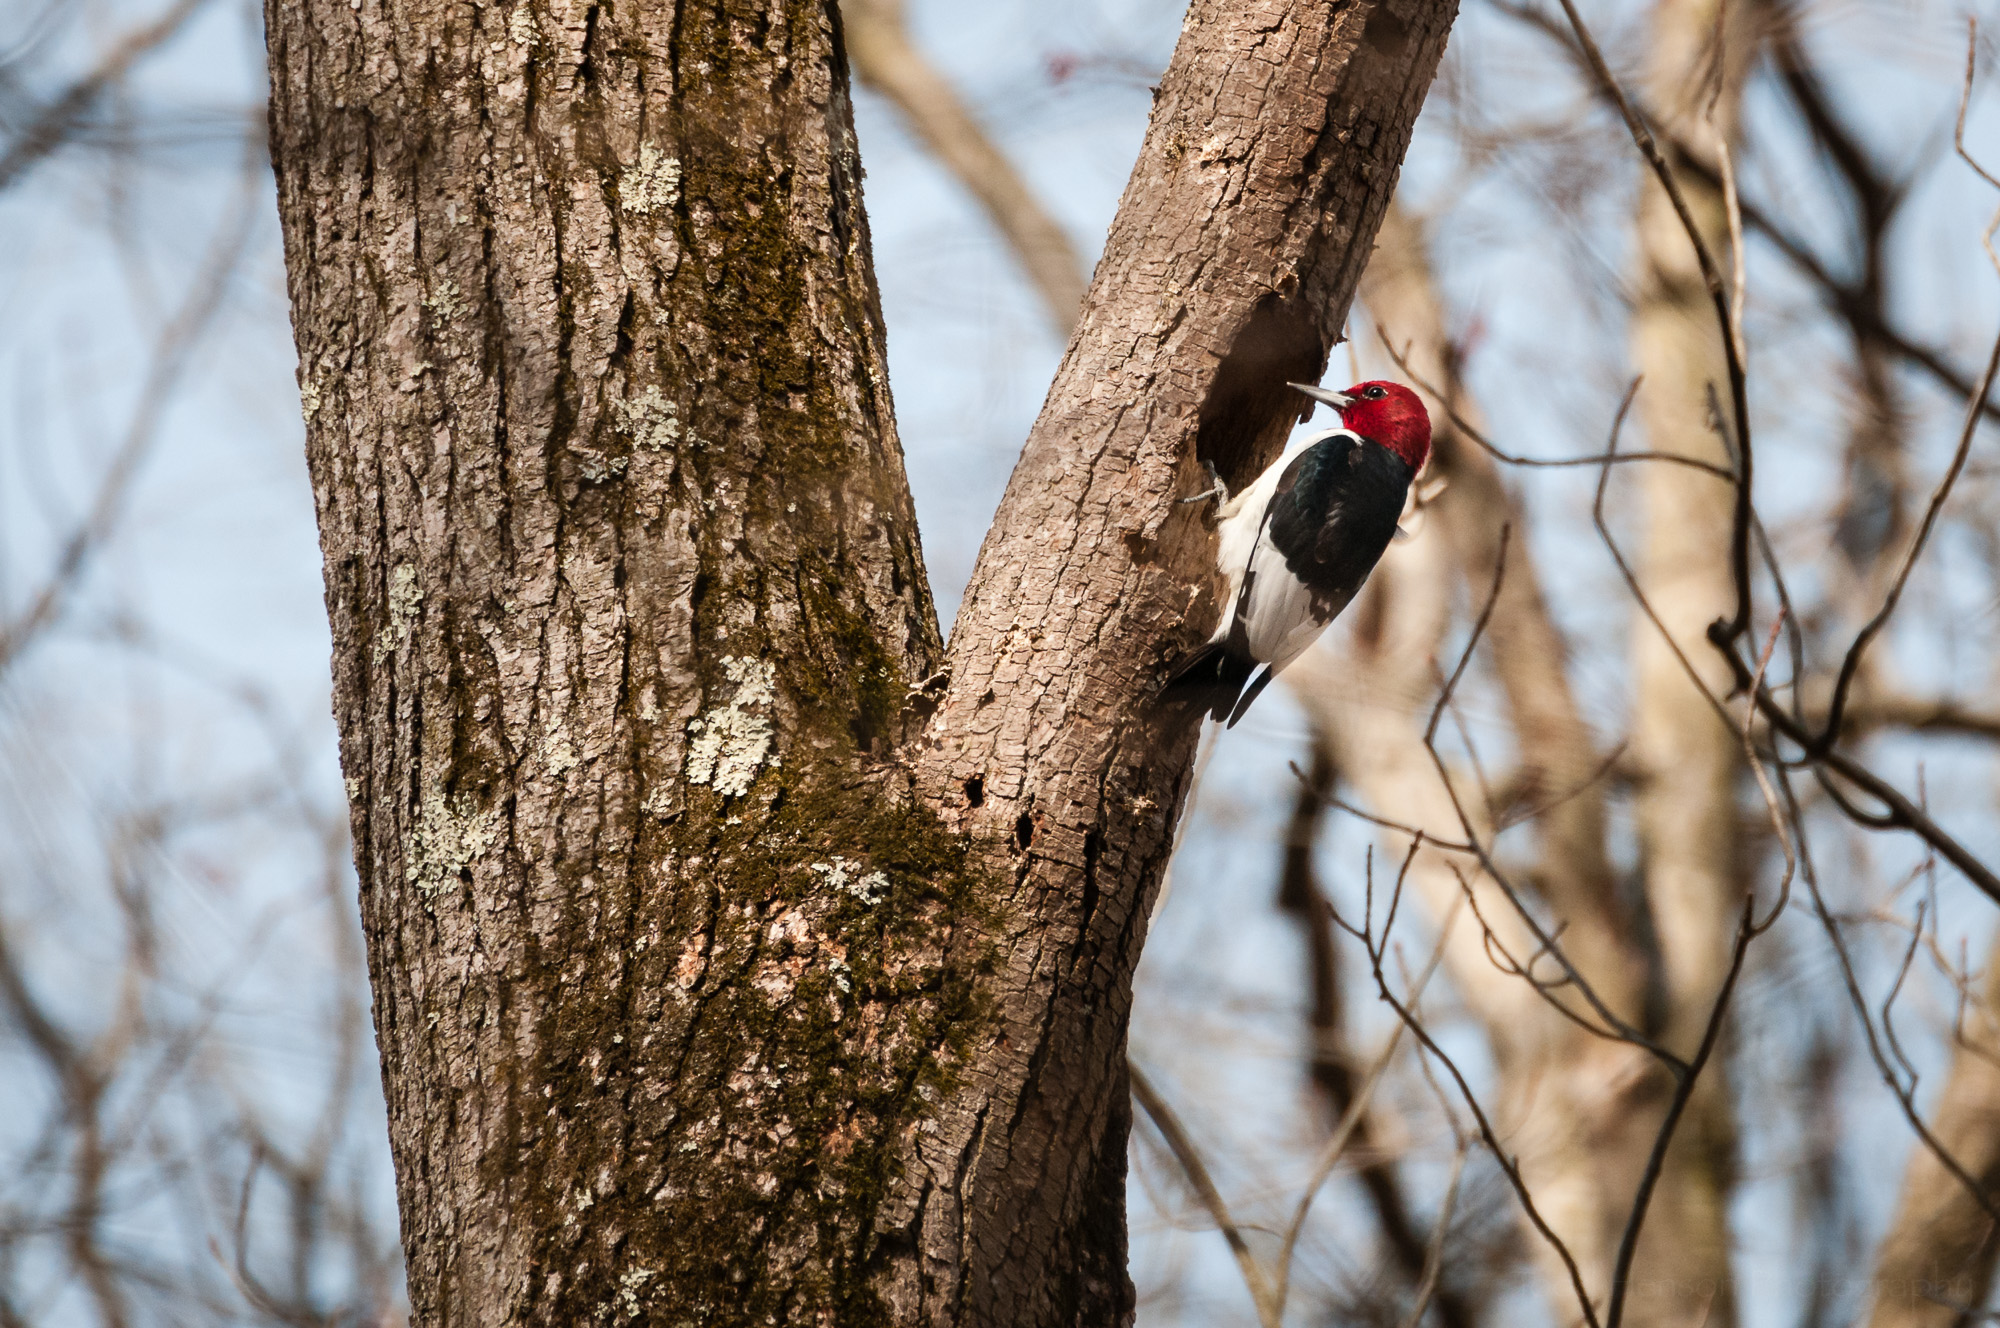 Red-headed Woodpecker perched in front of hole in tree